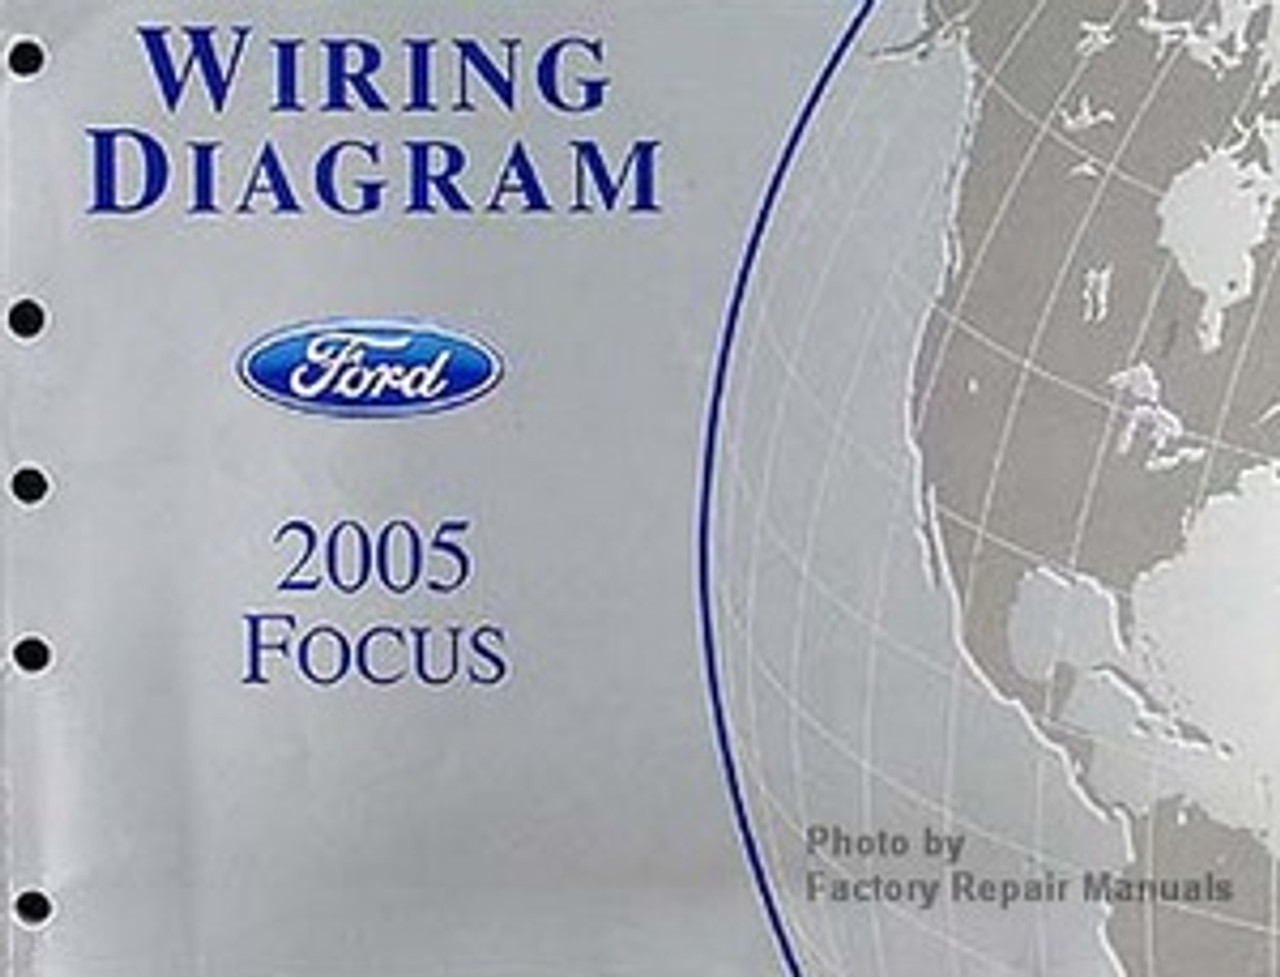 80 280zx harness pinout diagram 2005 ford focus electrical wiring diagrams original factory manual  2005 ford focus electrical wiring